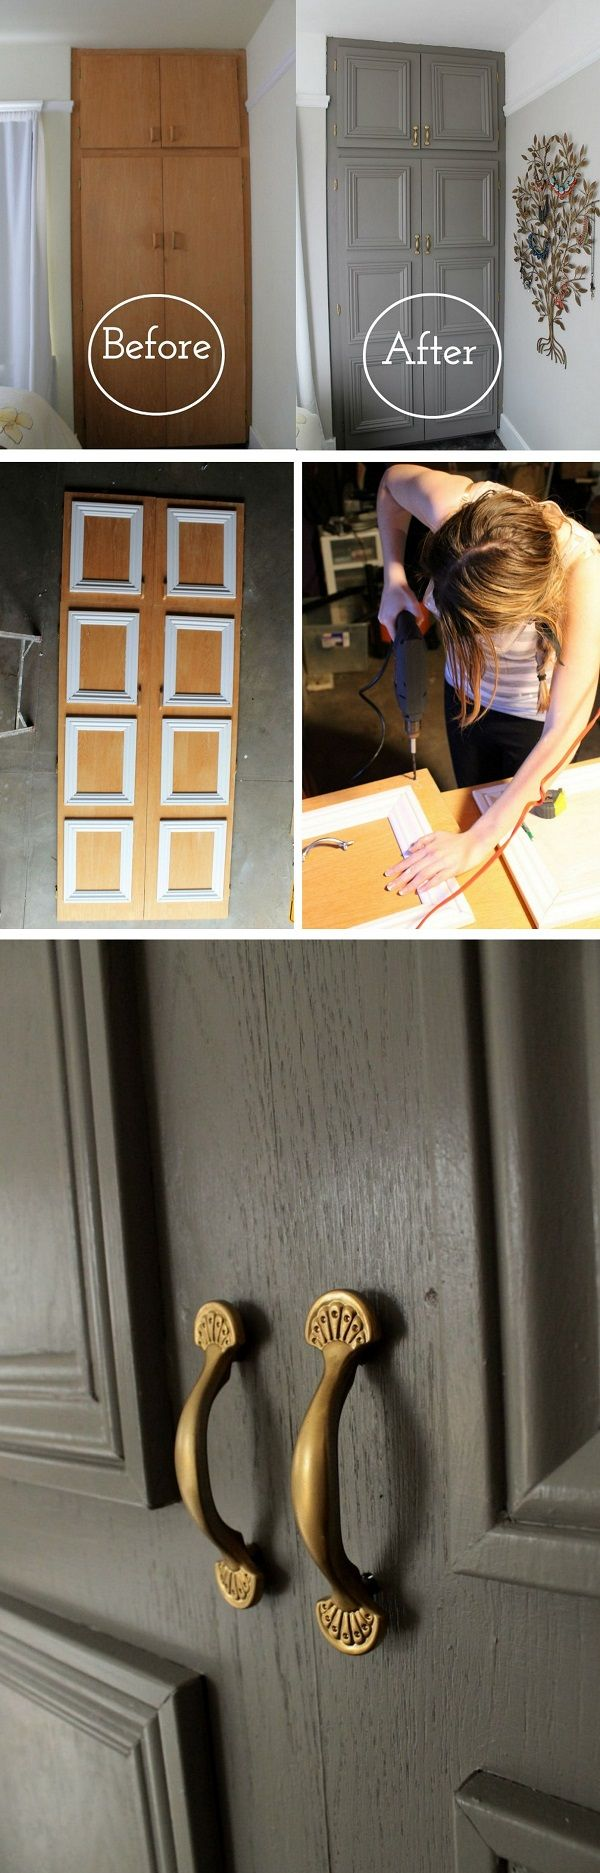 Wohnideen Selfmade 16 easy diy door projects for amazing home decor on a budget